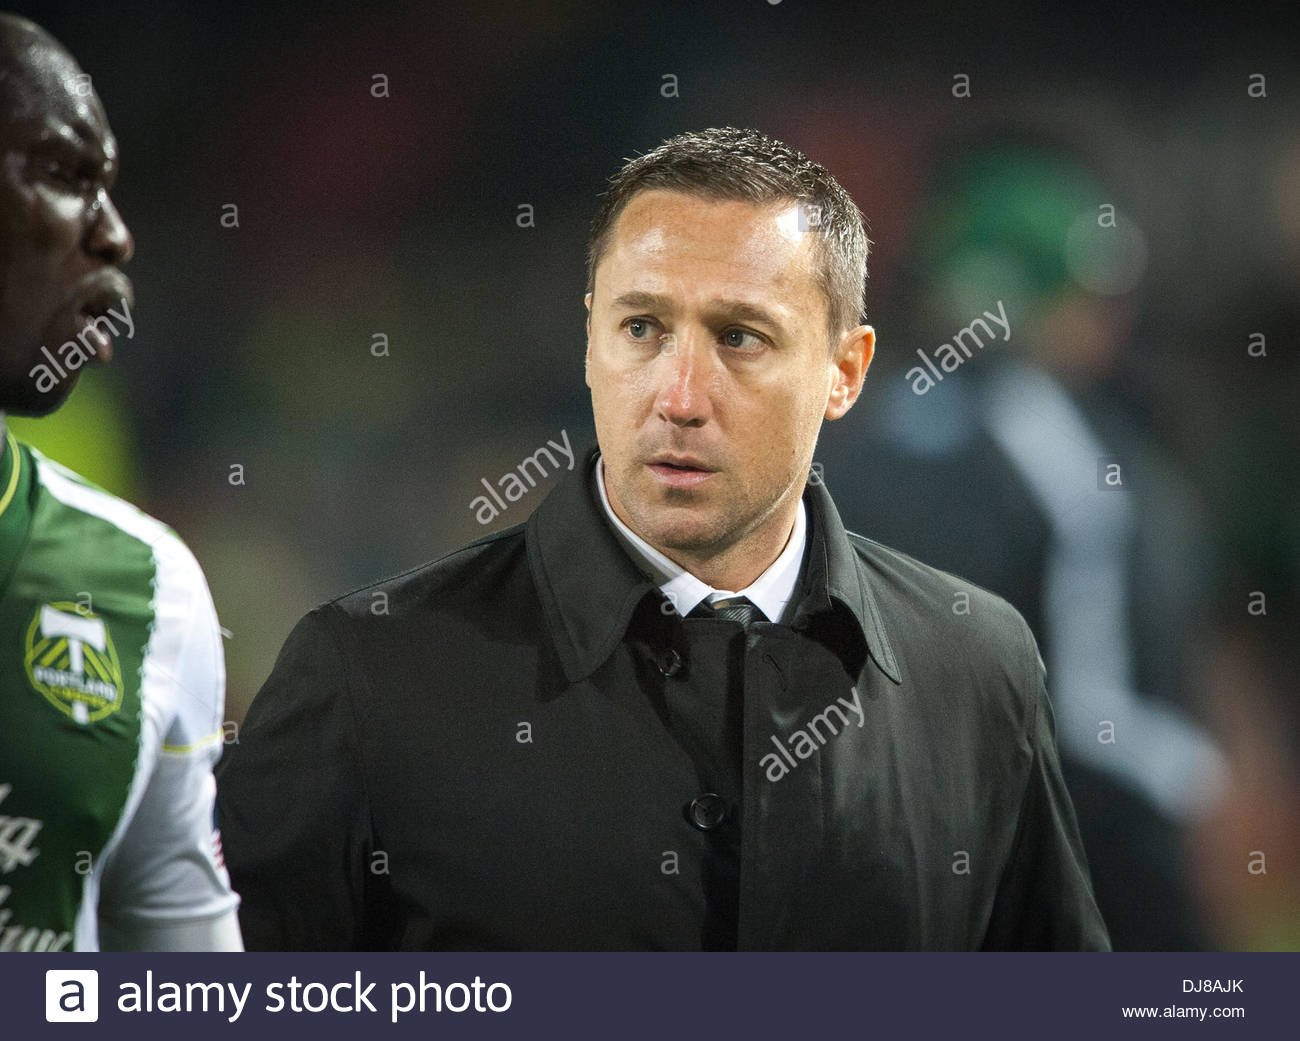 Portland, Oregon, US, . 24th Nov, 2013. Timbers head coach Caleb Porter. Real Salt Lake defeated Portland Timbers 1-0 to win the MLS Western Championship. The Timbers played host to RSL at Portland's Jeld-Wen Field to a sell out crowd. Credit:  Ken Hawkins/ZUMAPRESS.com/Alamy Live News - Stock Image